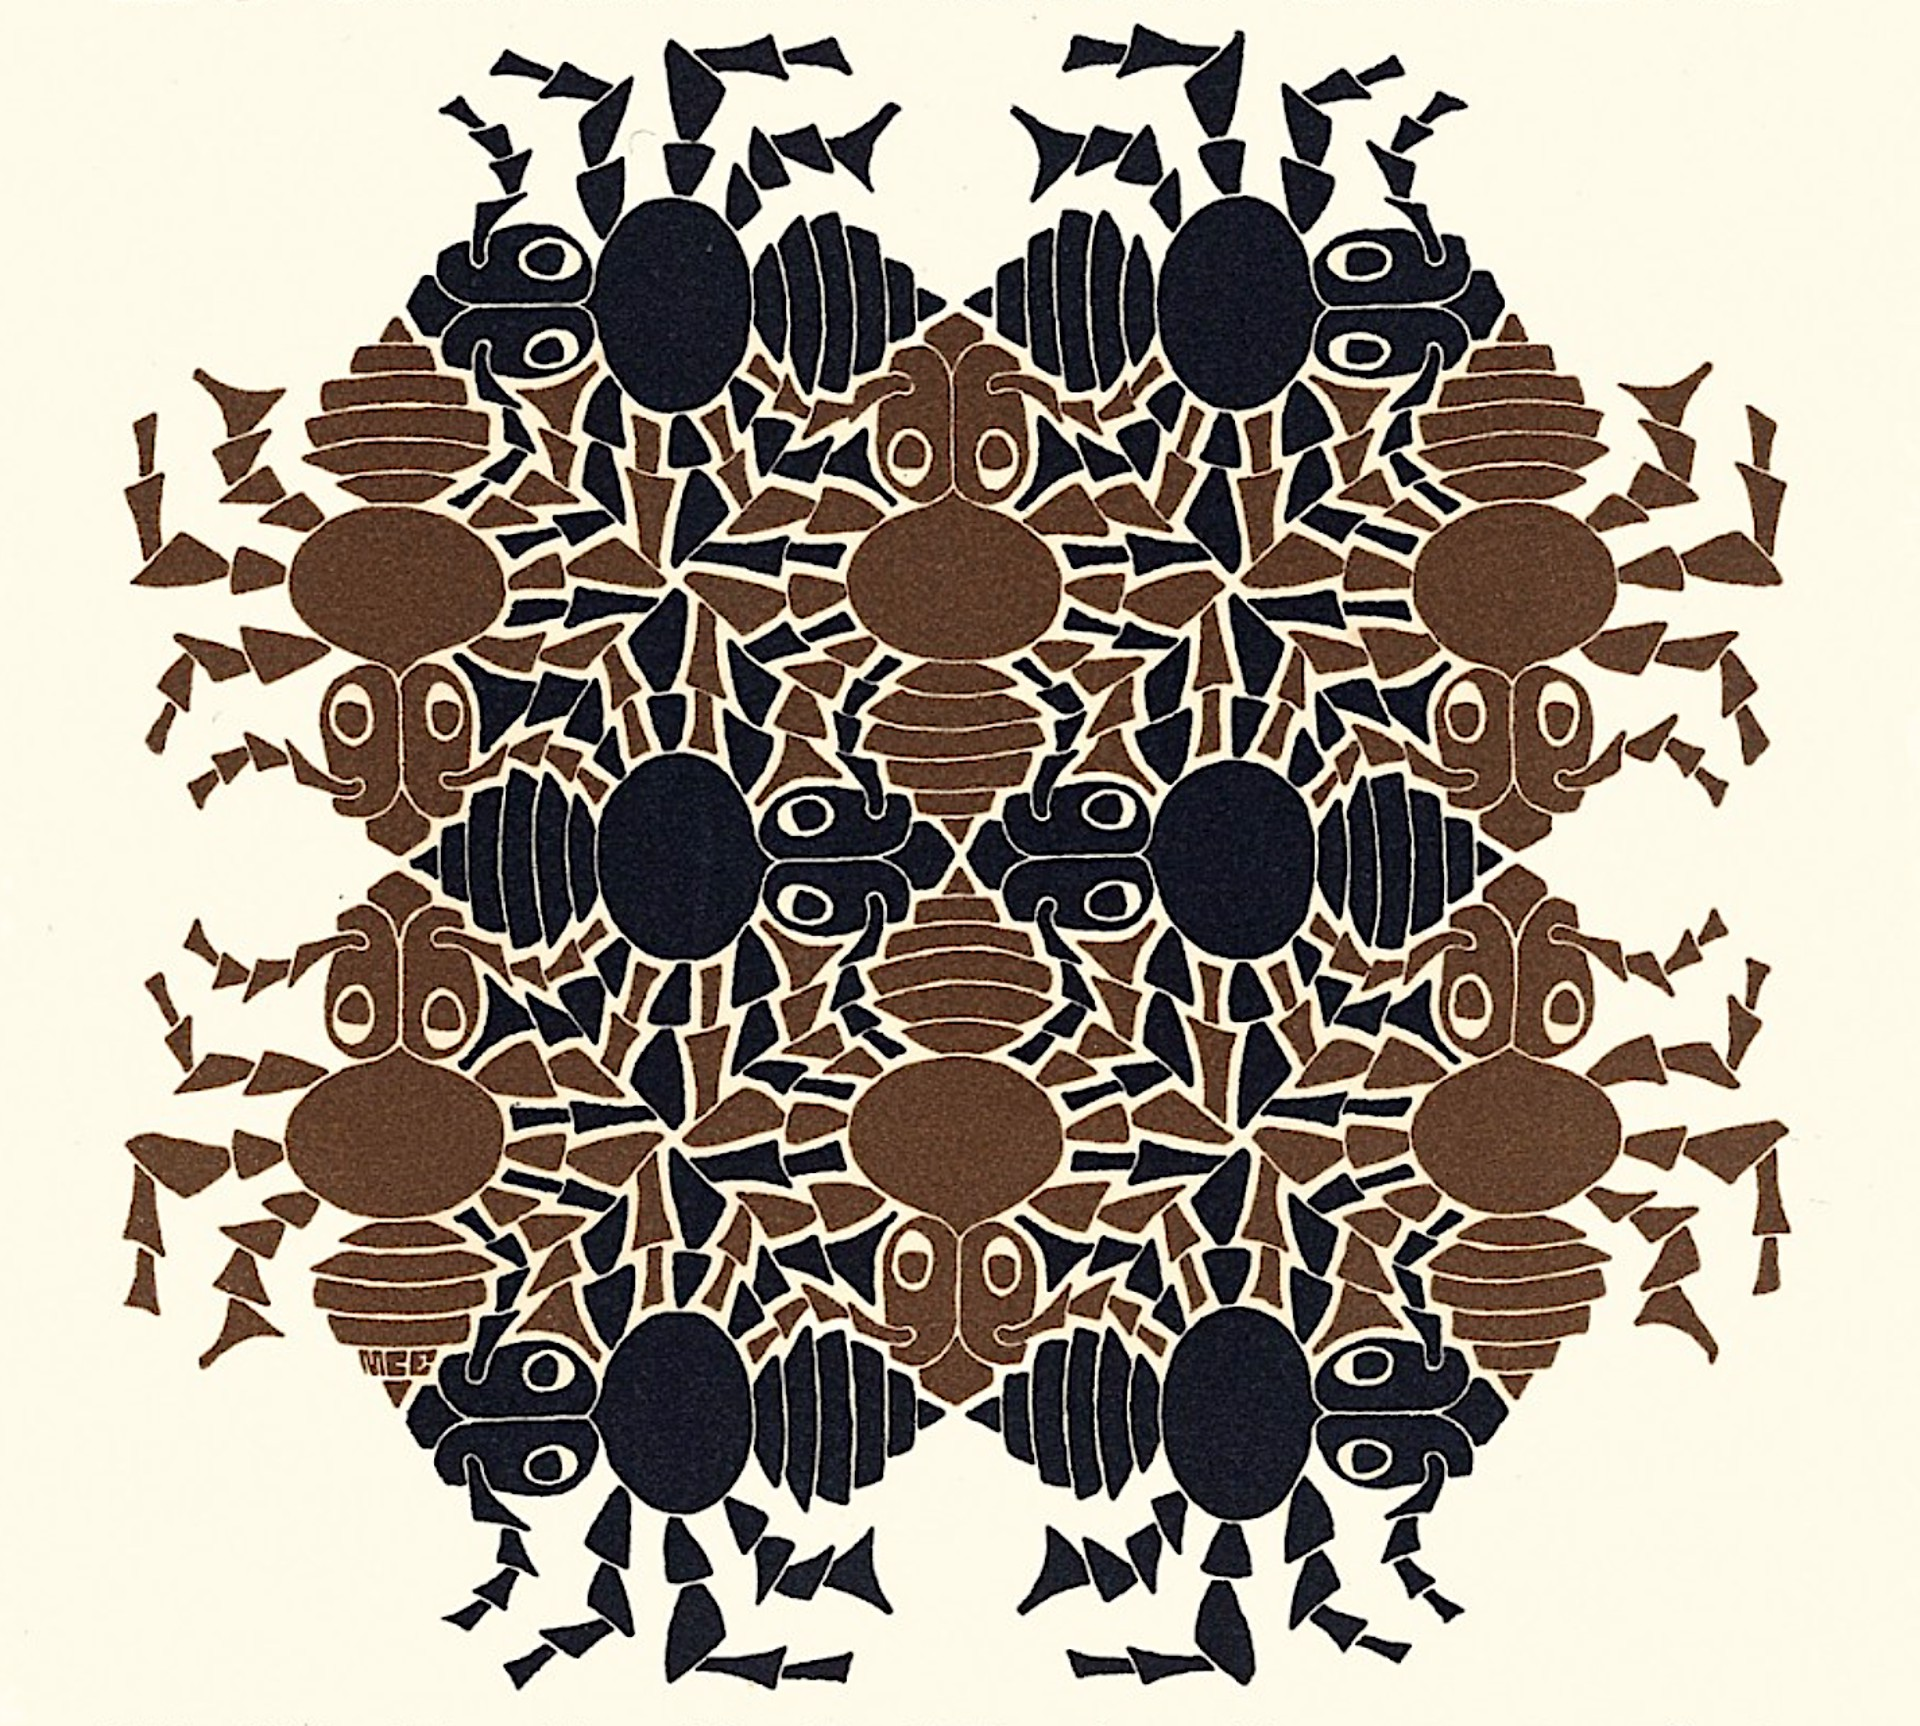 Earth - Strens New Year's Greeting Card (Ants) by M.C. Escher